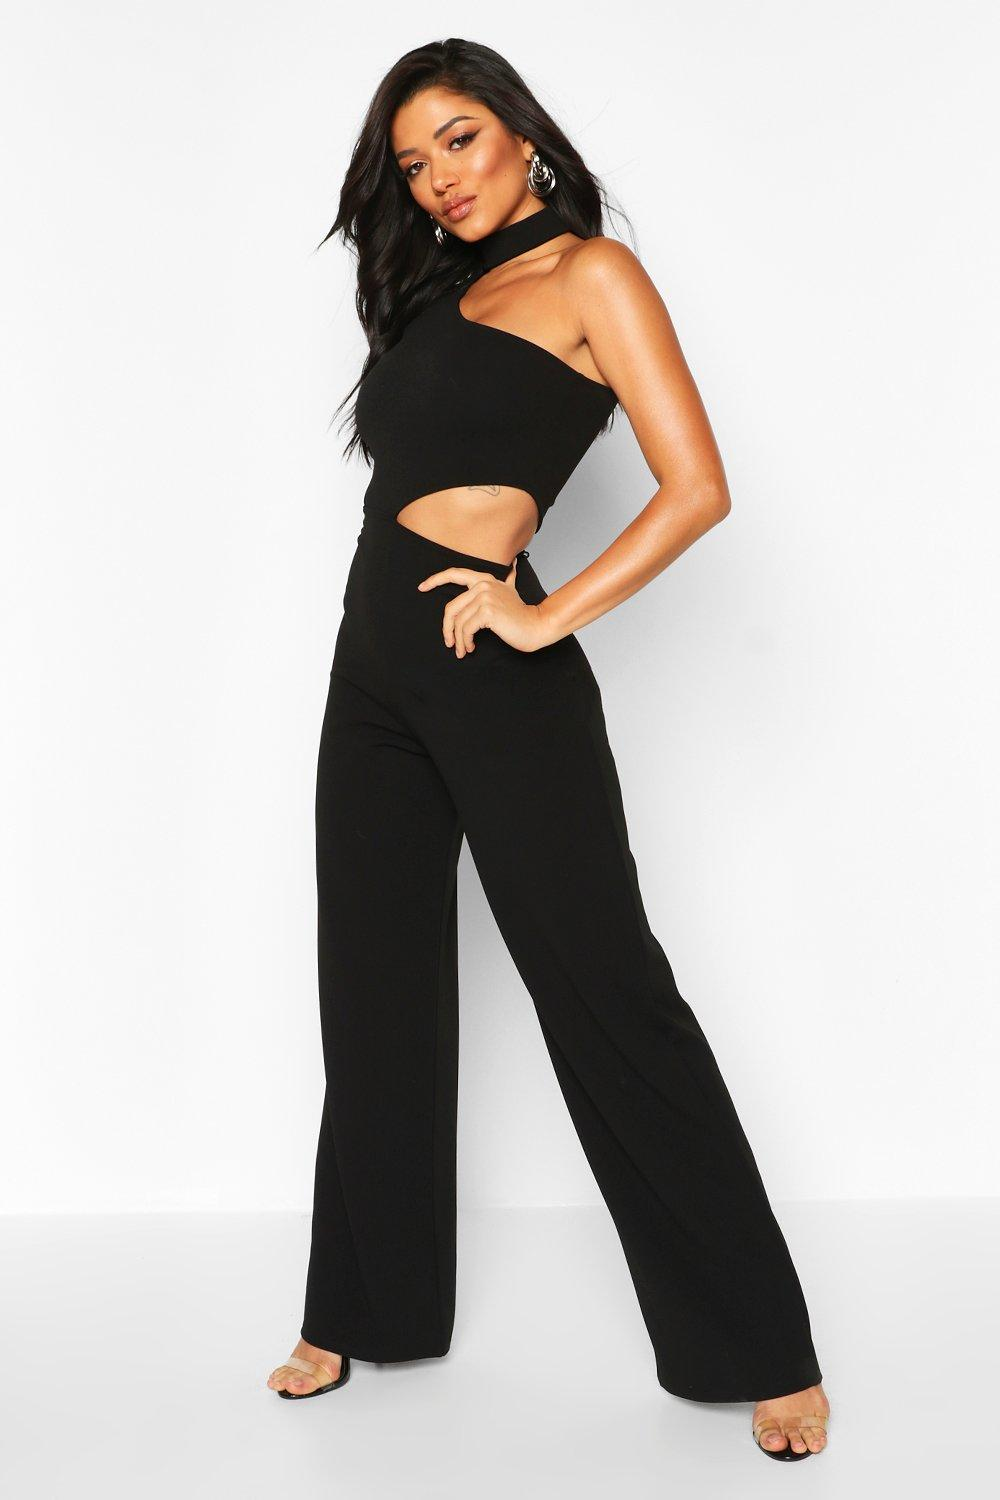 boohoo Womens One Shoulder Wide Leg Cut Side Jumpsuit - Black - 12, Black